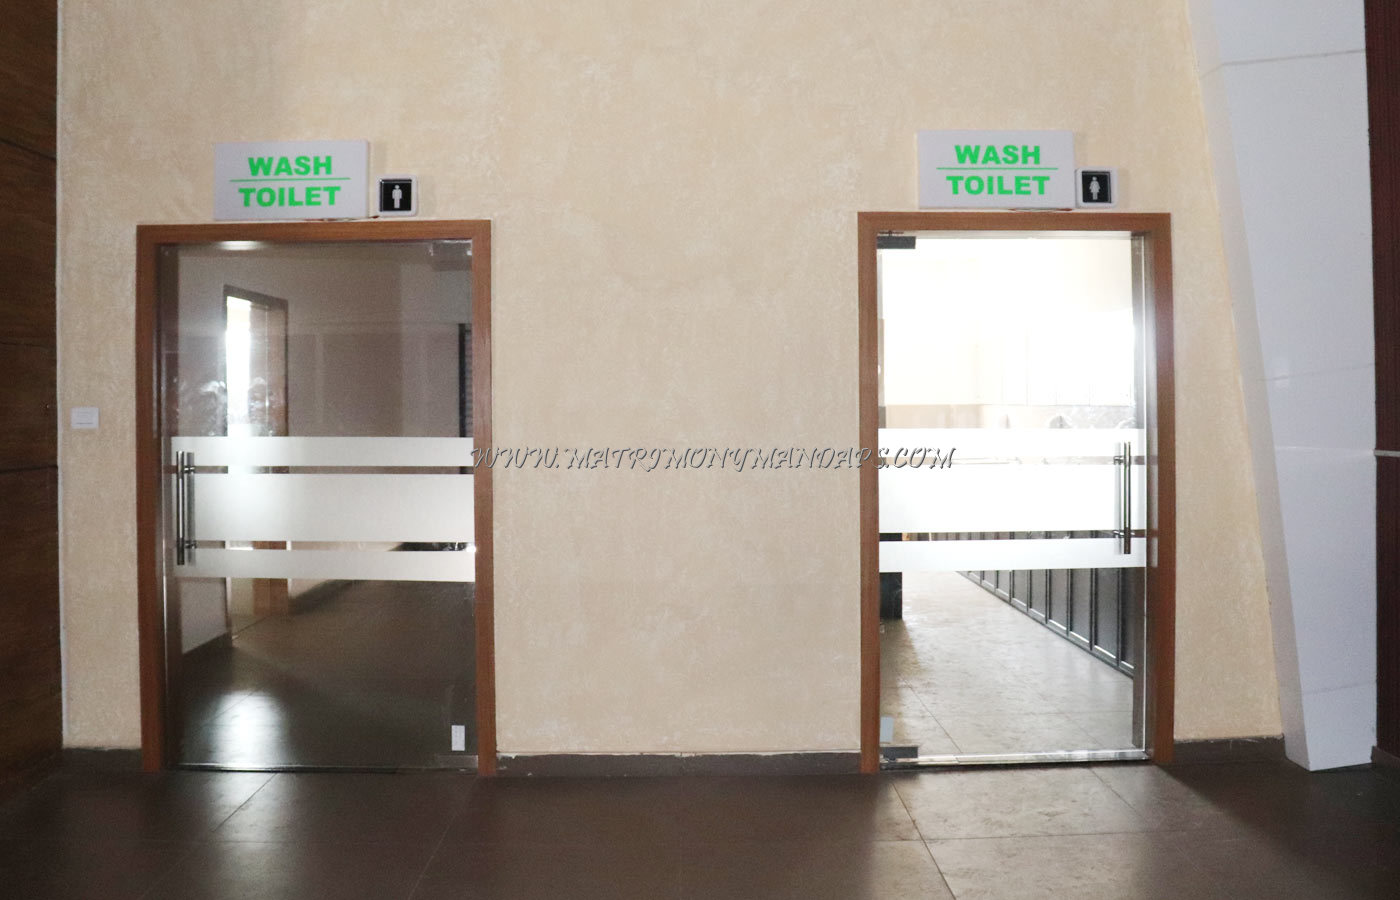 Zamra International Convention And Exhibition Centre - Restrooms